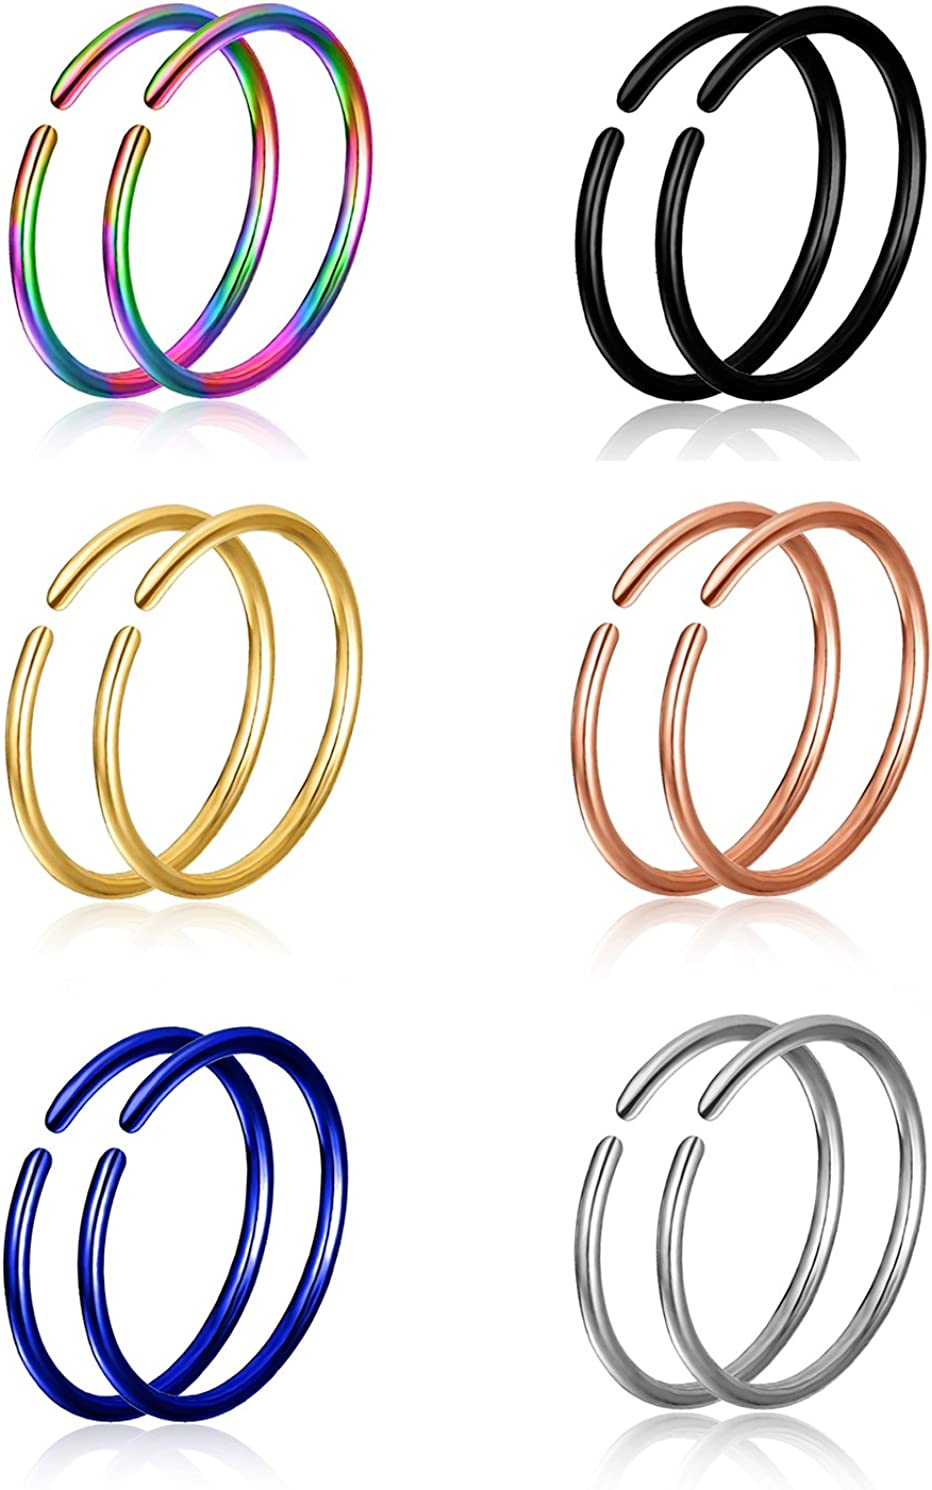 Tornito 8-12PCS 22G-20G-18G 316L Steel Nose Ring Lip Daith Cartilage Helix Tragus Hoop Ring